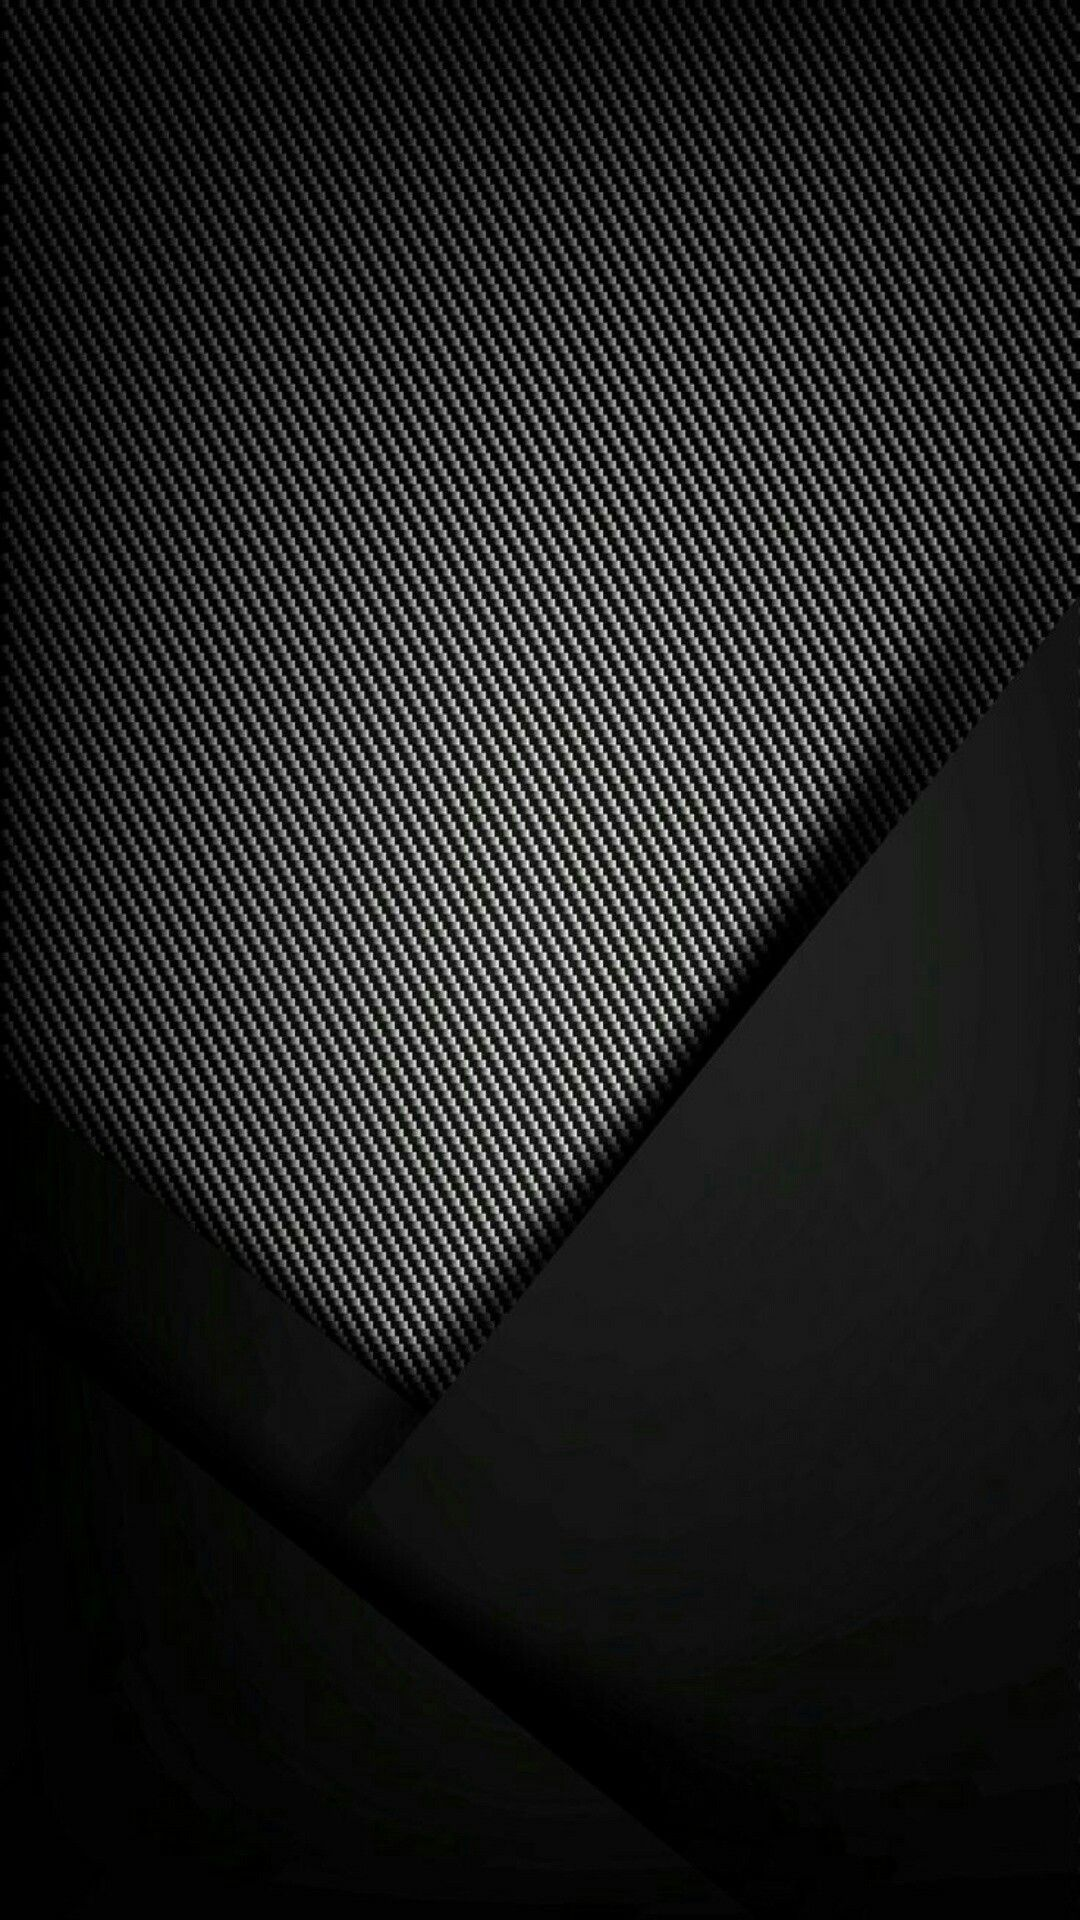 Get Latest Black Background for Android Phone Today